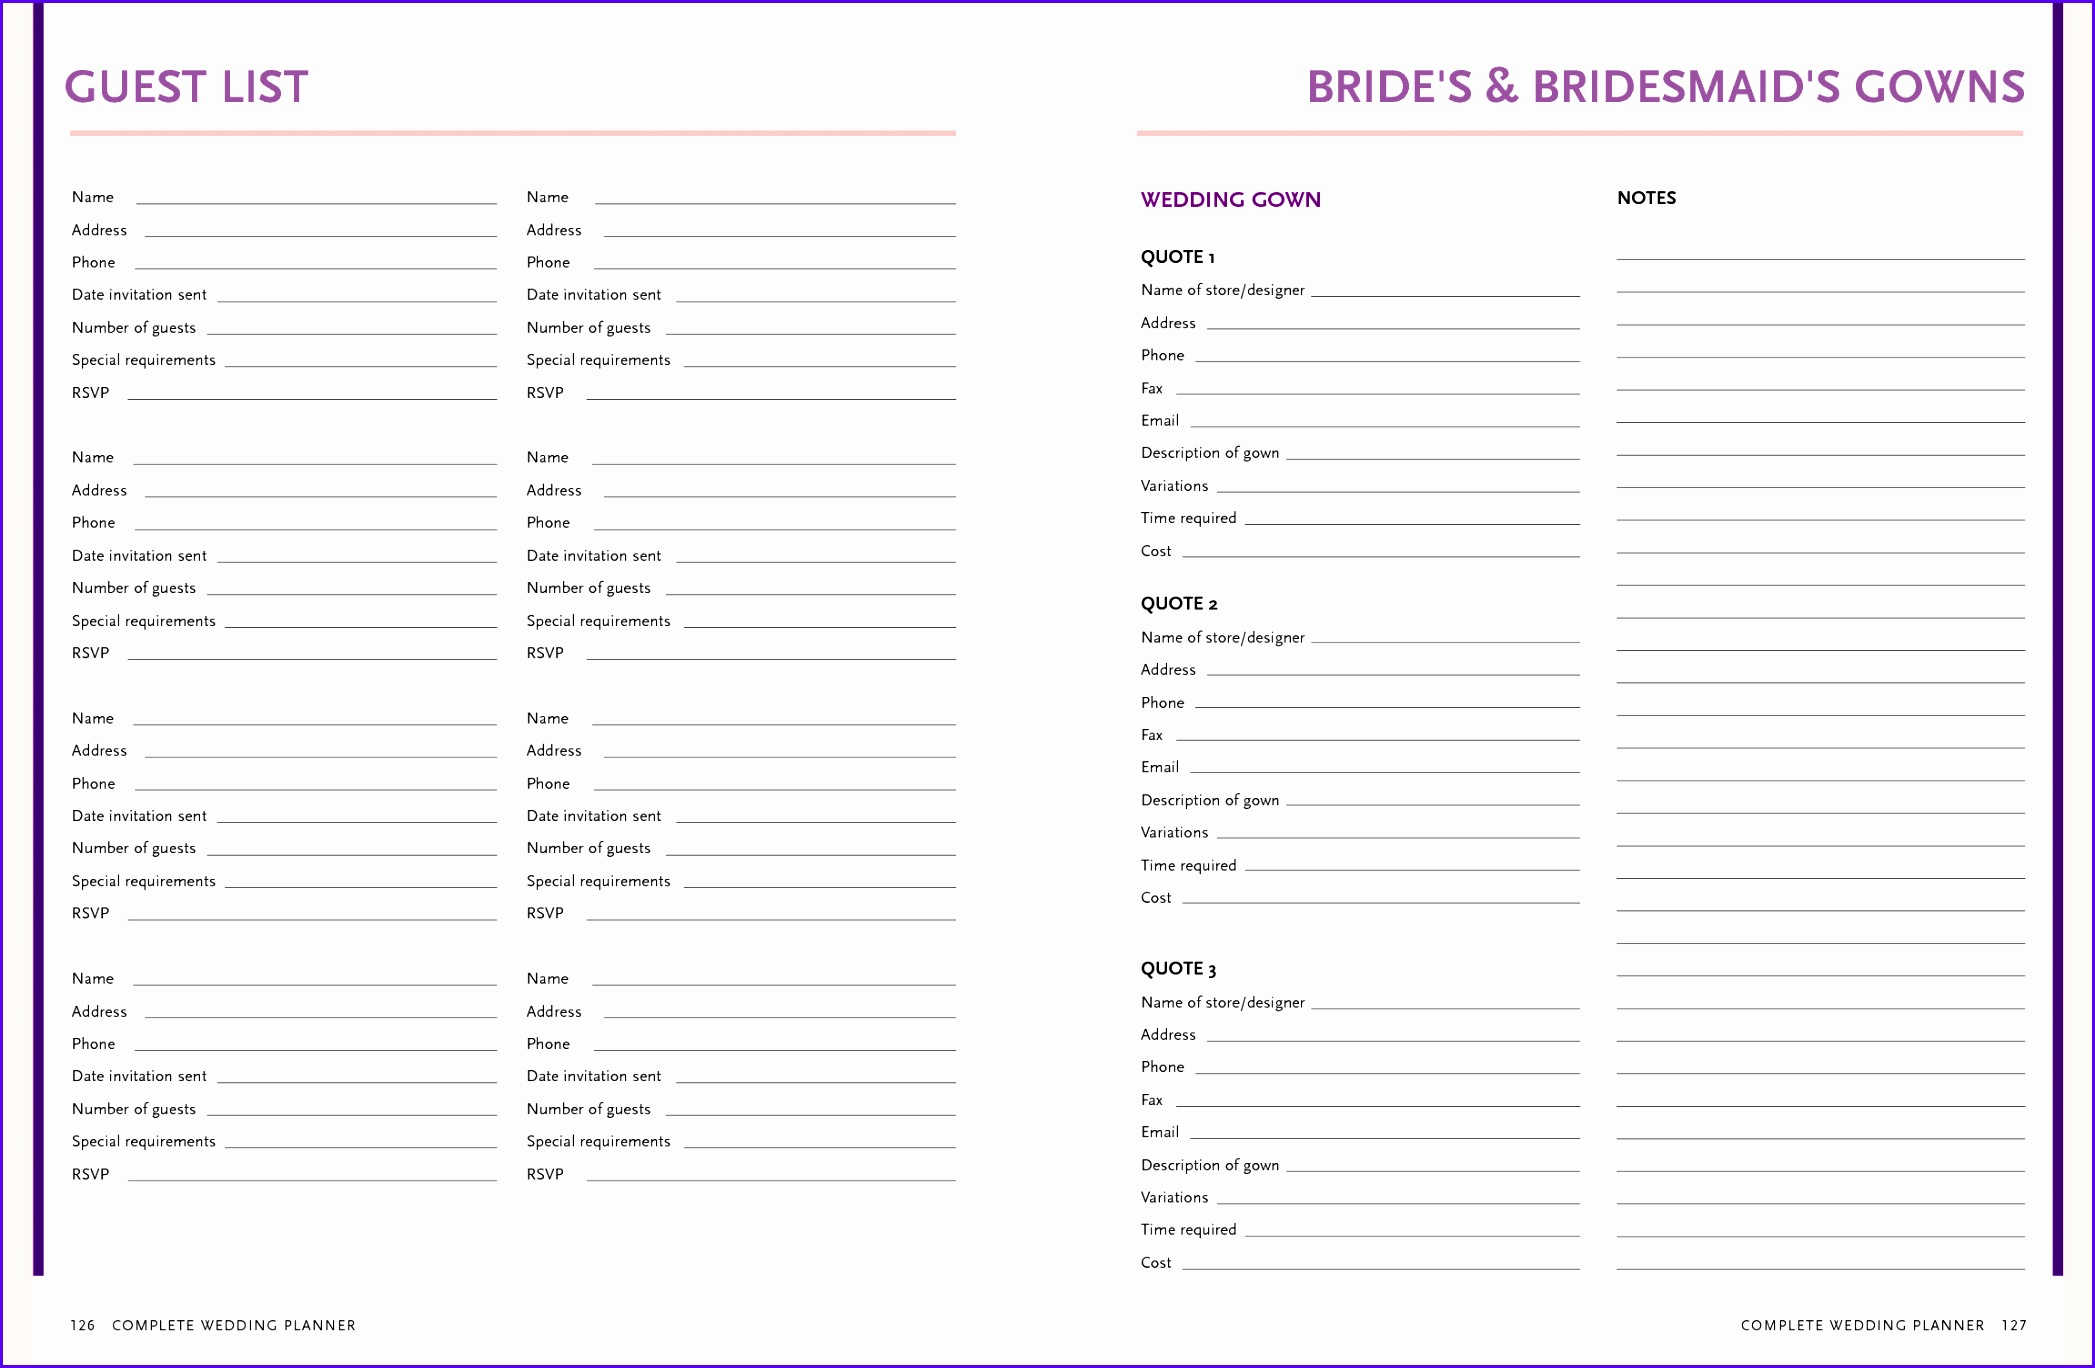 Wedding guest list template excel image collections 5 things your boss needs to know about 20951368